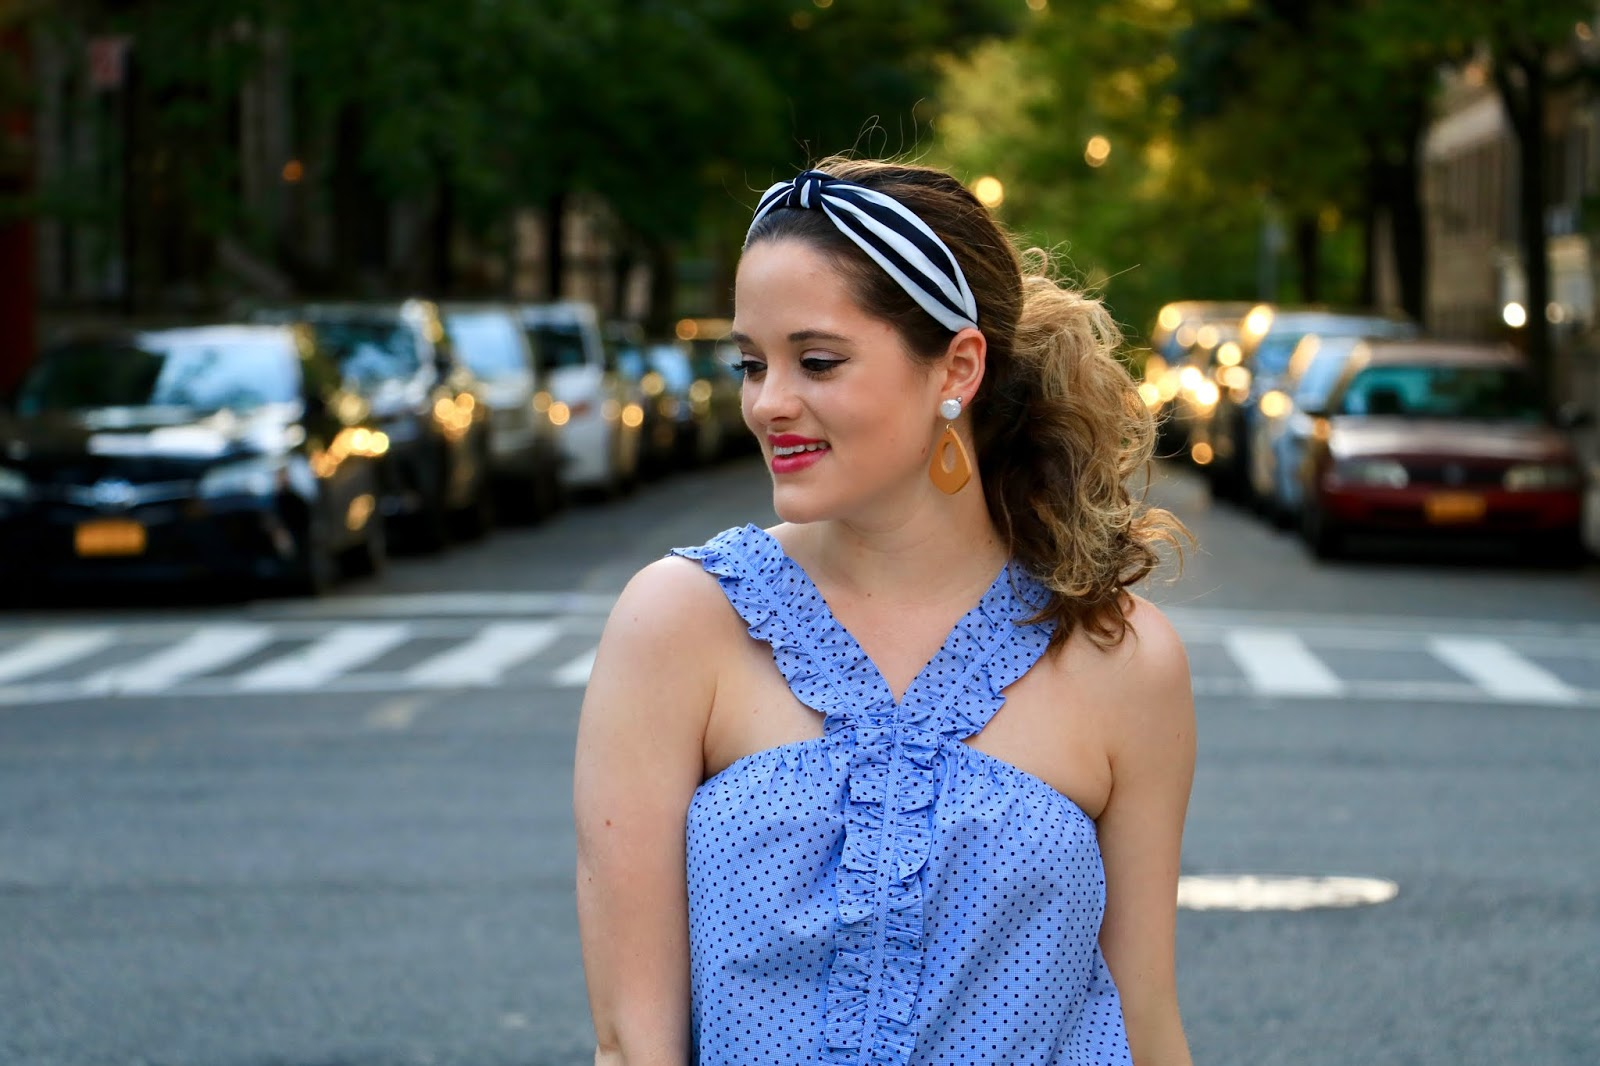 Nyc fashion blogger Kathleen Harper's springtime date night outfit.